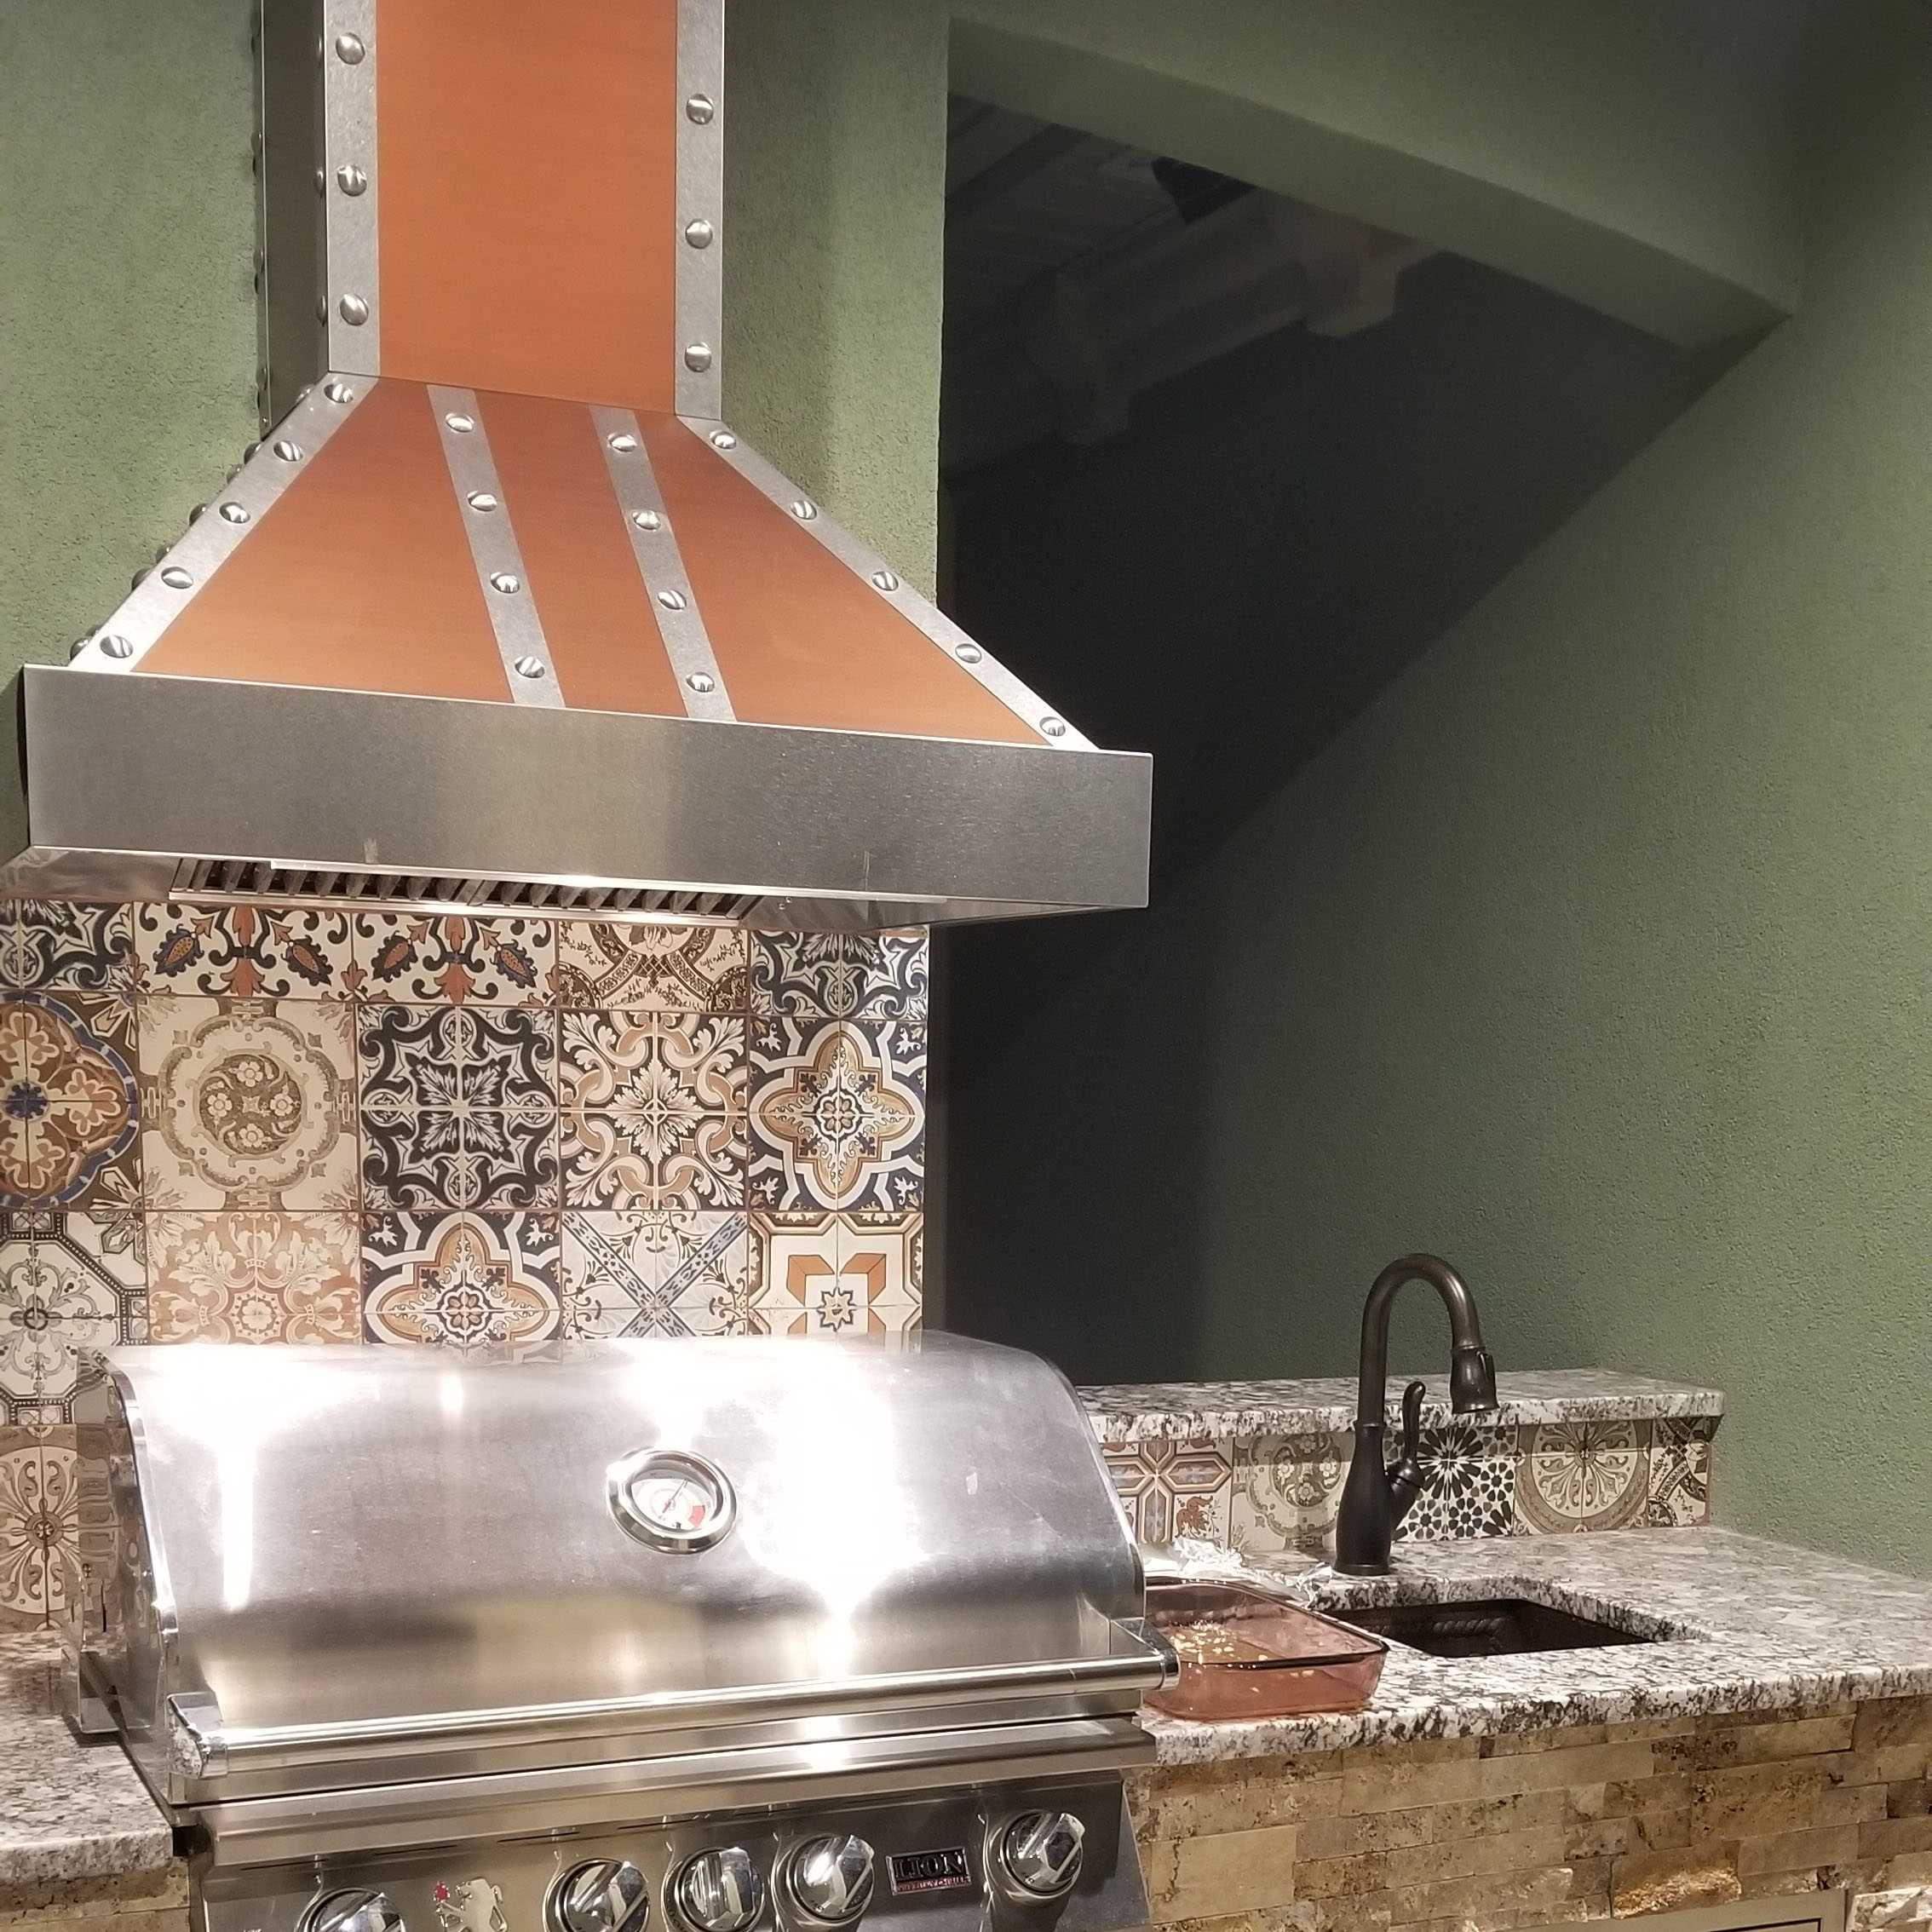 zline-copper-wall-mounted-range-hood-655-CSSSS-customer-photo-sq copy.jpg